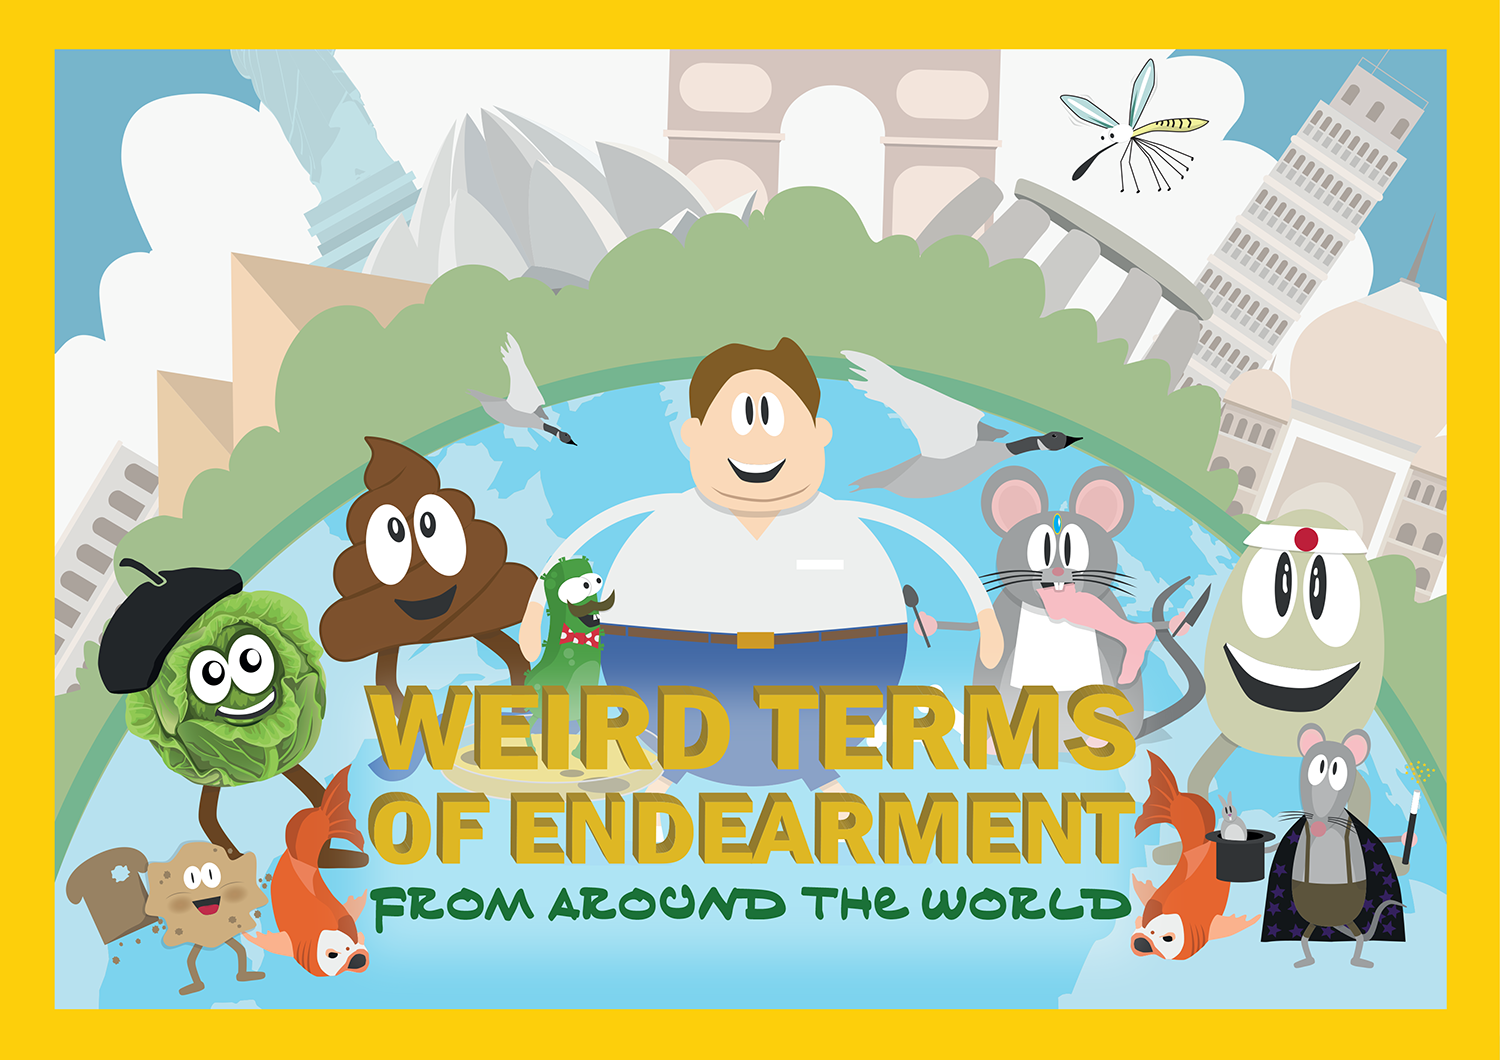 Direct Travel - Weird Terms of Endearment from around the World